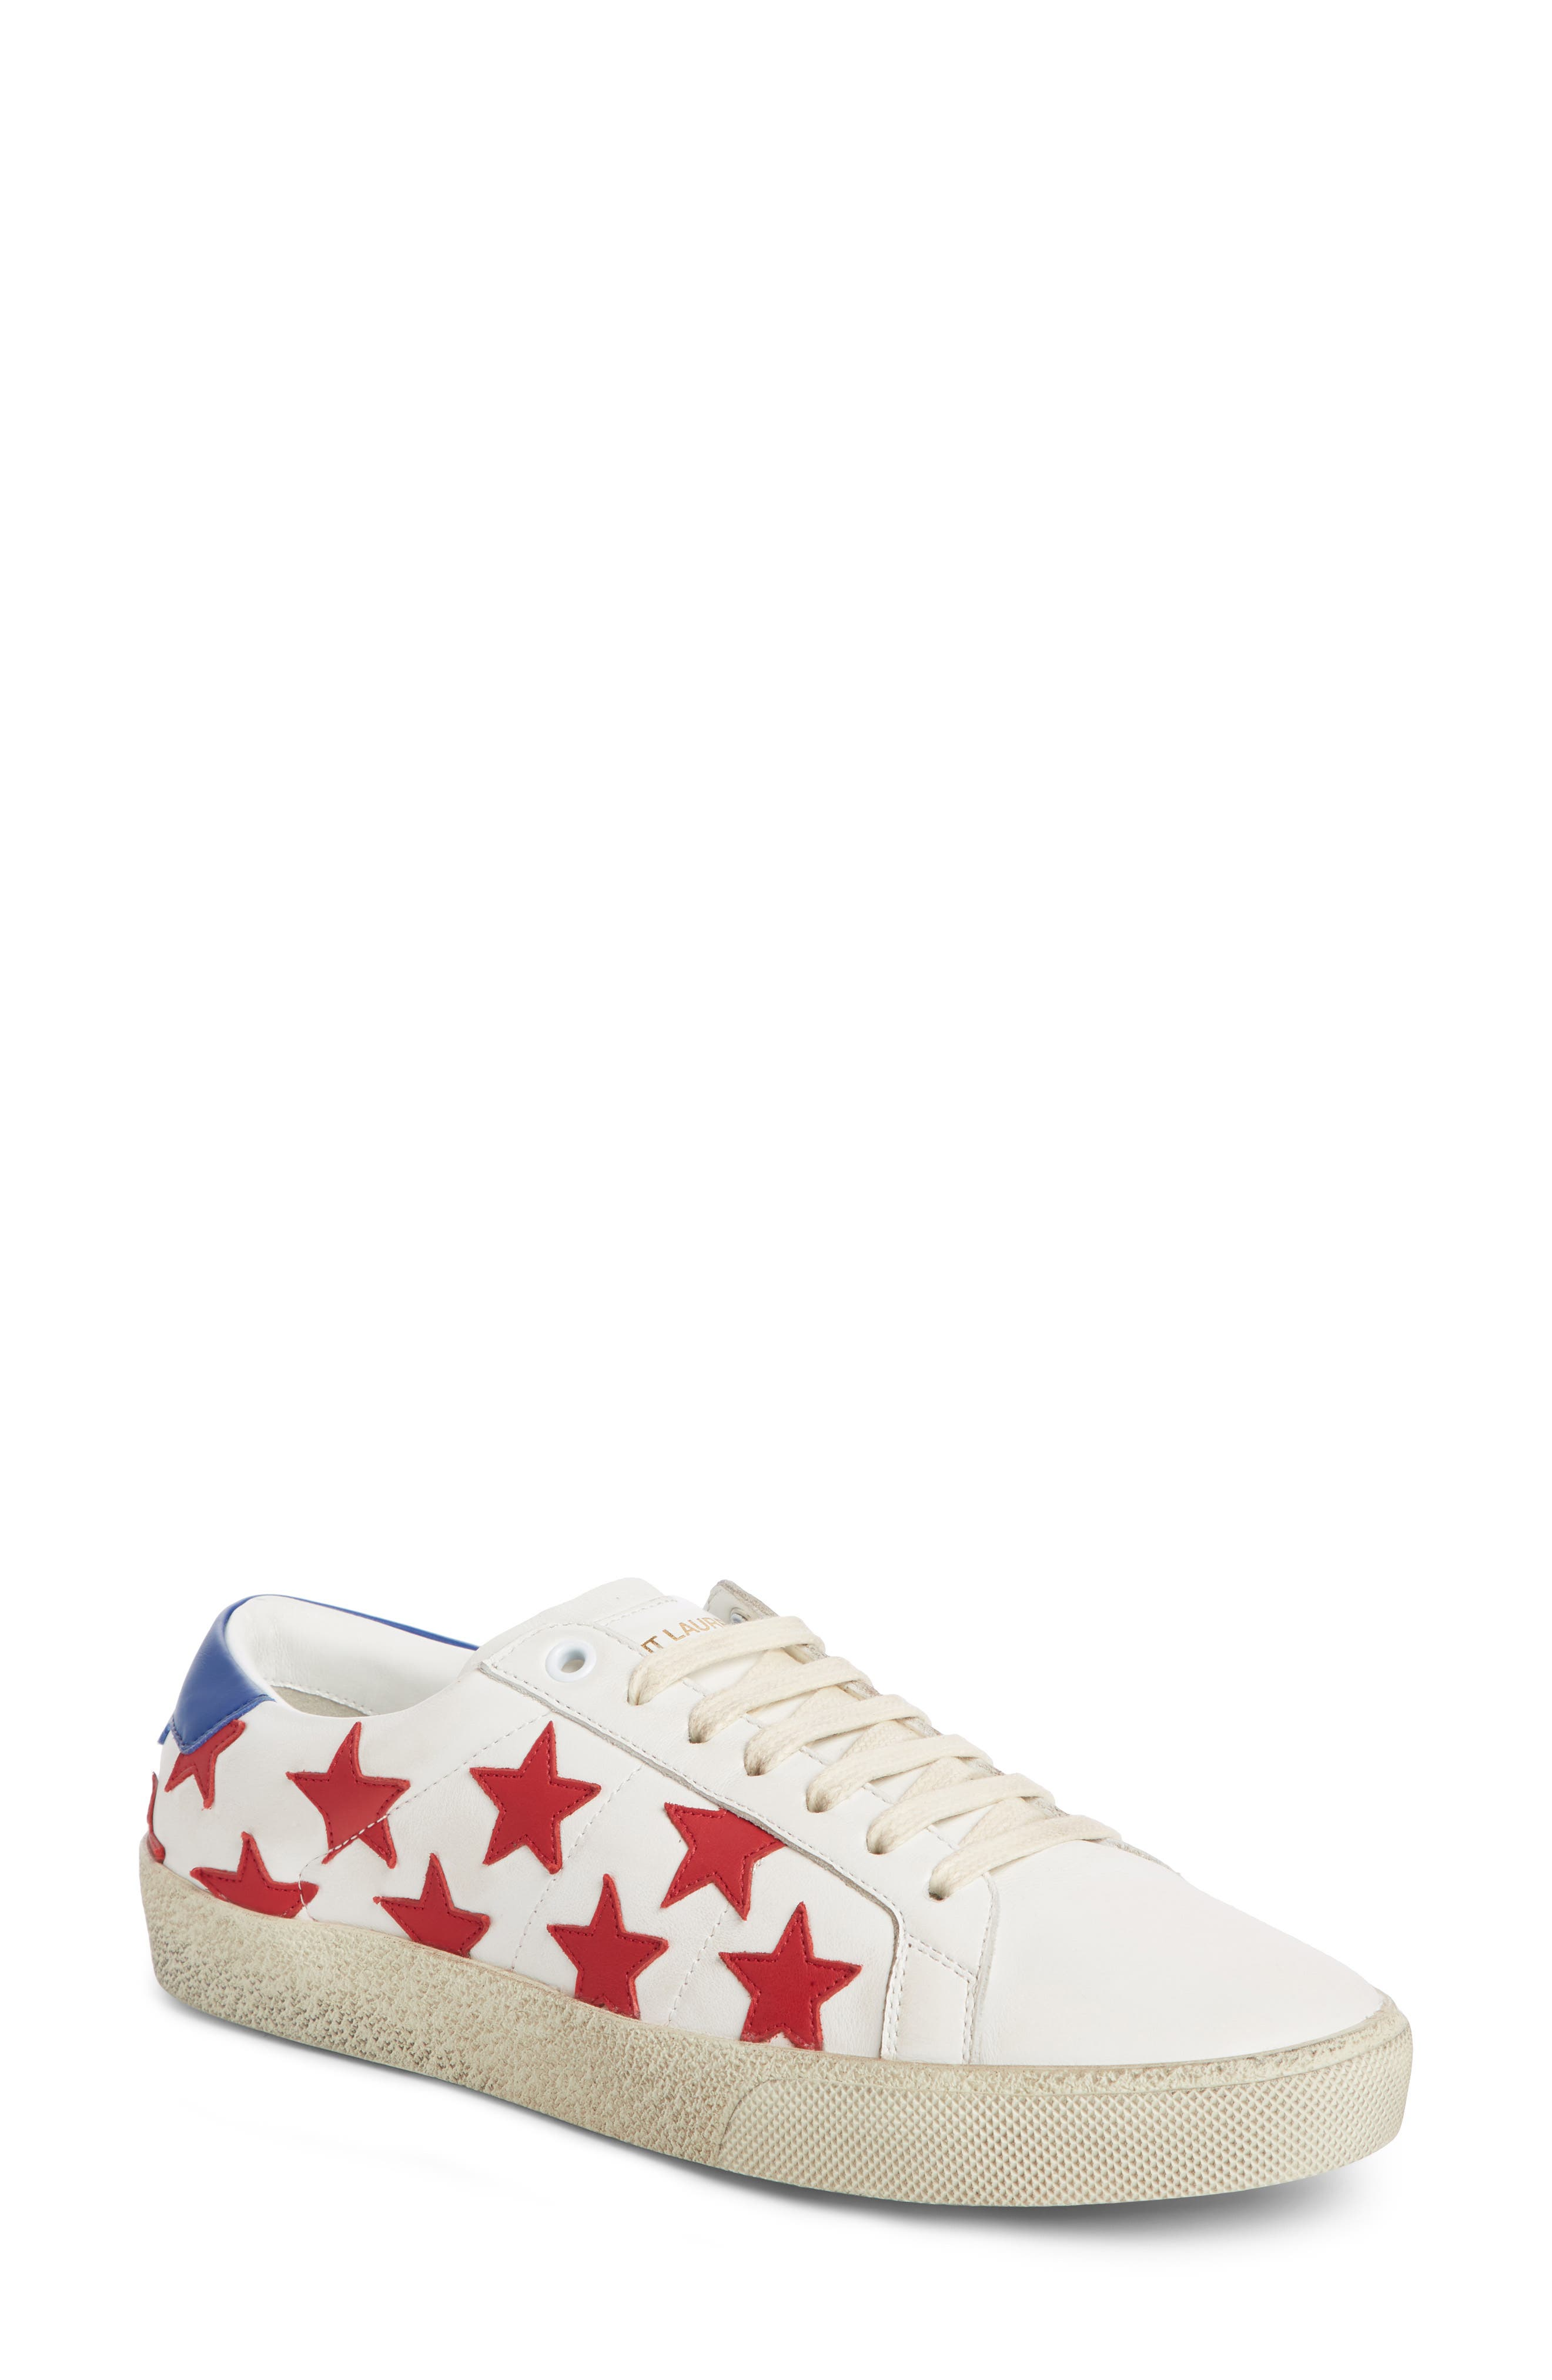 SAINT LAURENT Classic Court Sneaker, Main, color, WHITE/ RED